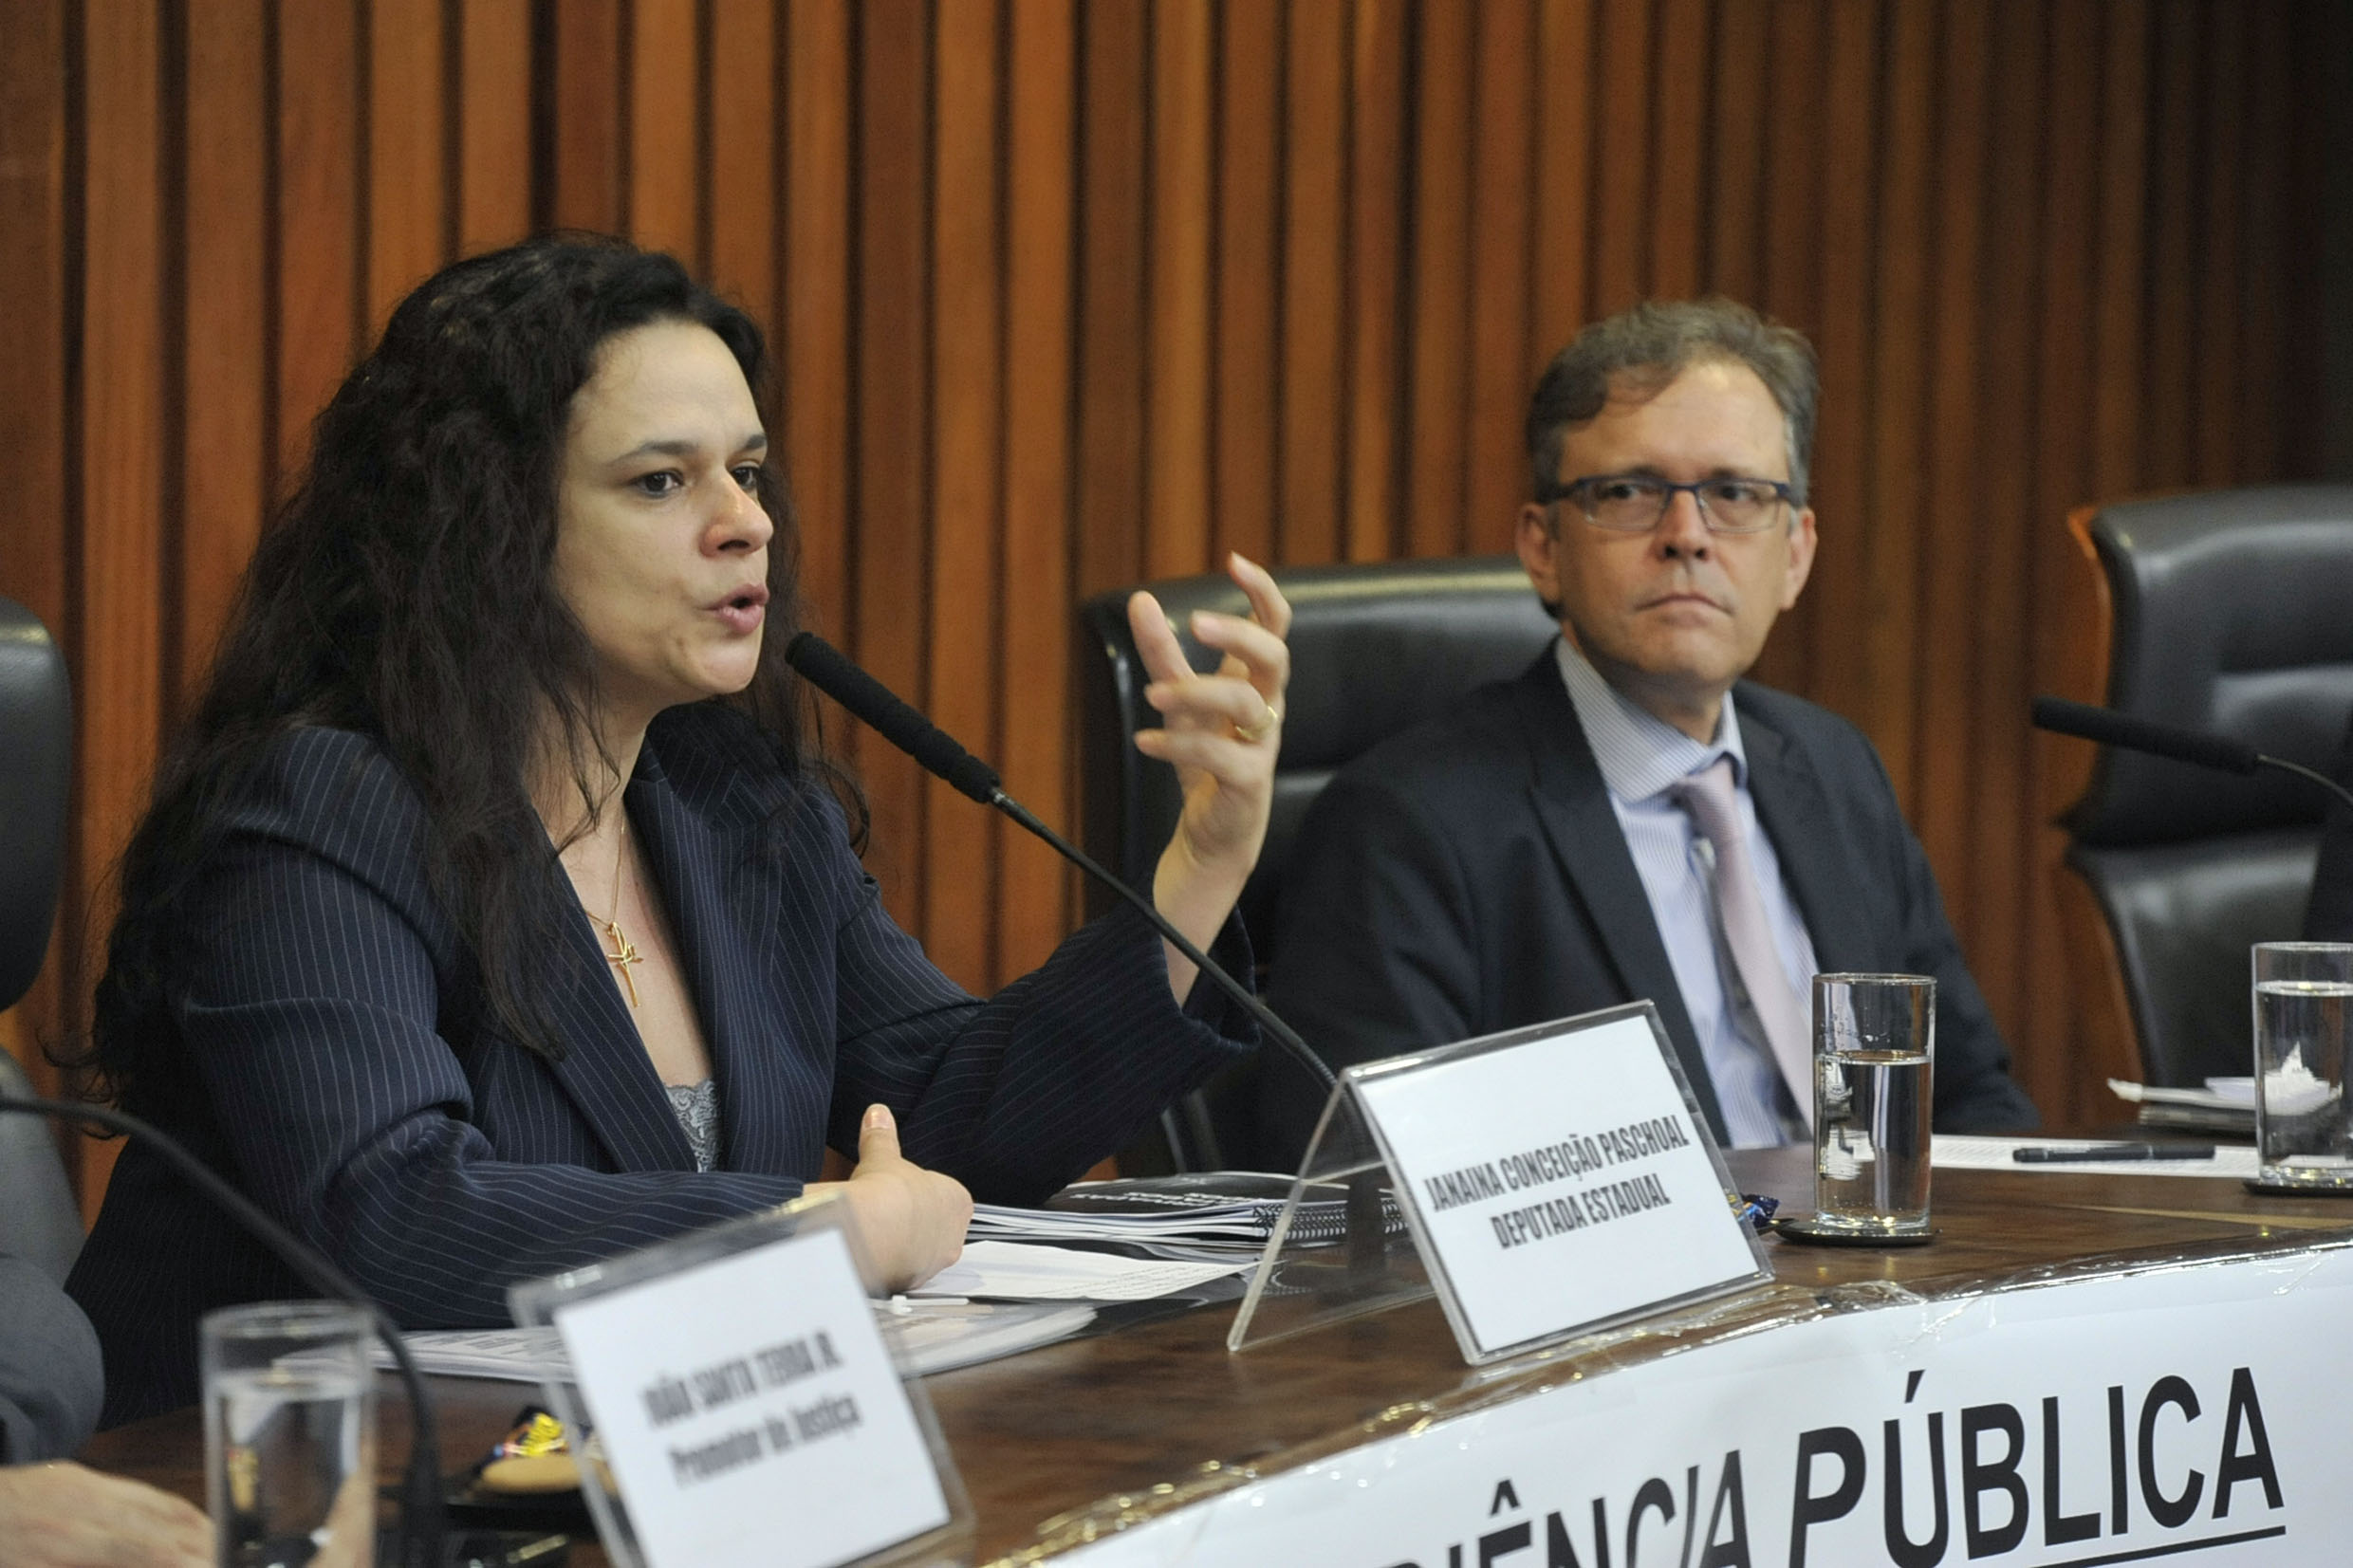 Janaina Paschoal e José Mauricio Conti<a style='float:right' href='https://www3.al.sp.gov.br/repositorio/noticia/N-07-2019/fg236844.jpg' target=_blank><img src='/_img/material-file-download-white.png' width='14px' alt='Clique para baixar a imagem'></a>